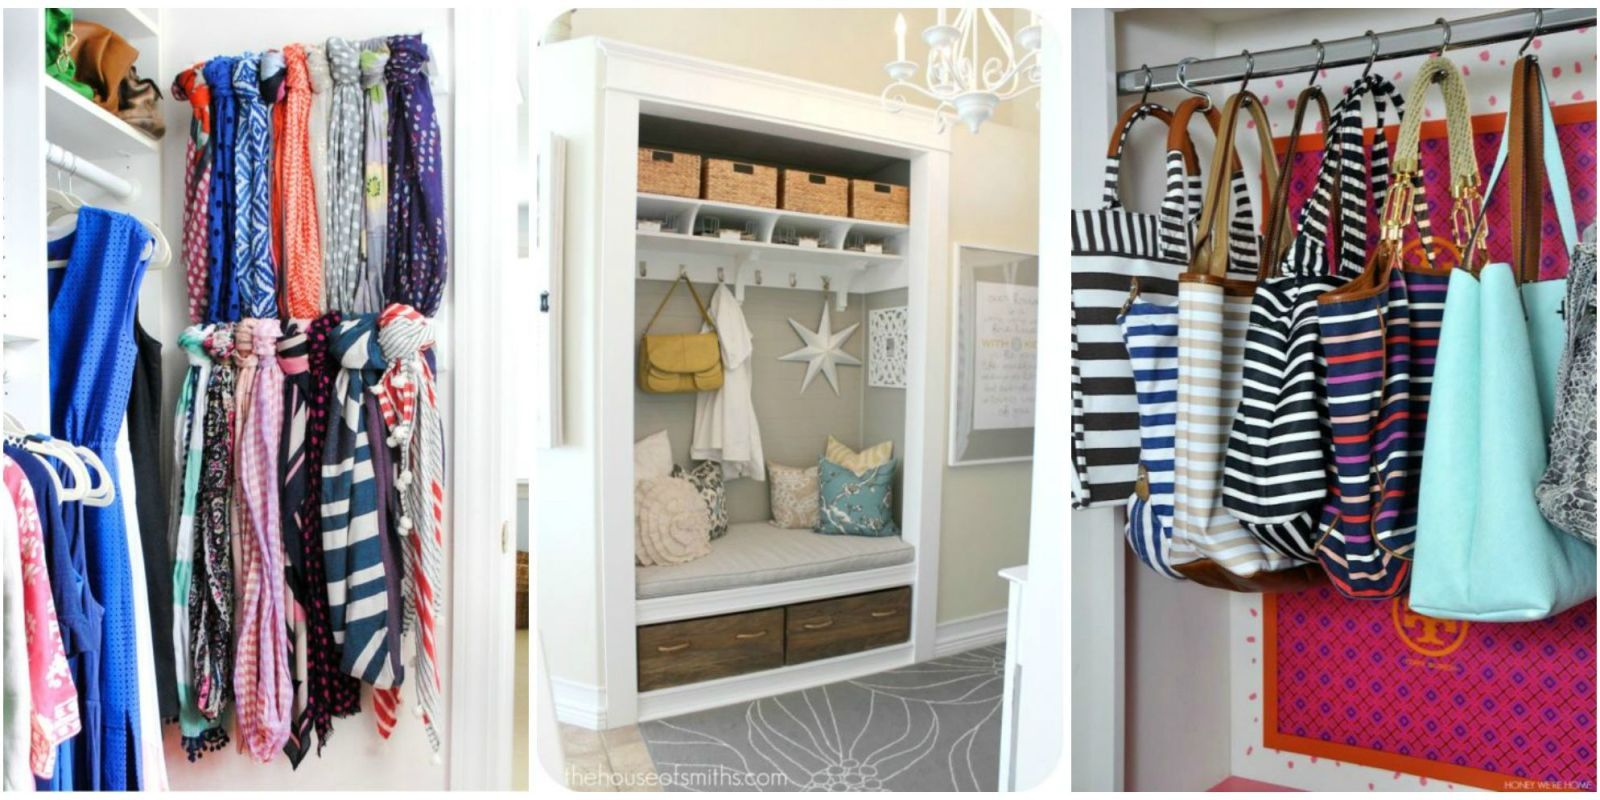 These Tips Will Give You The Most Organized Closet Ever.